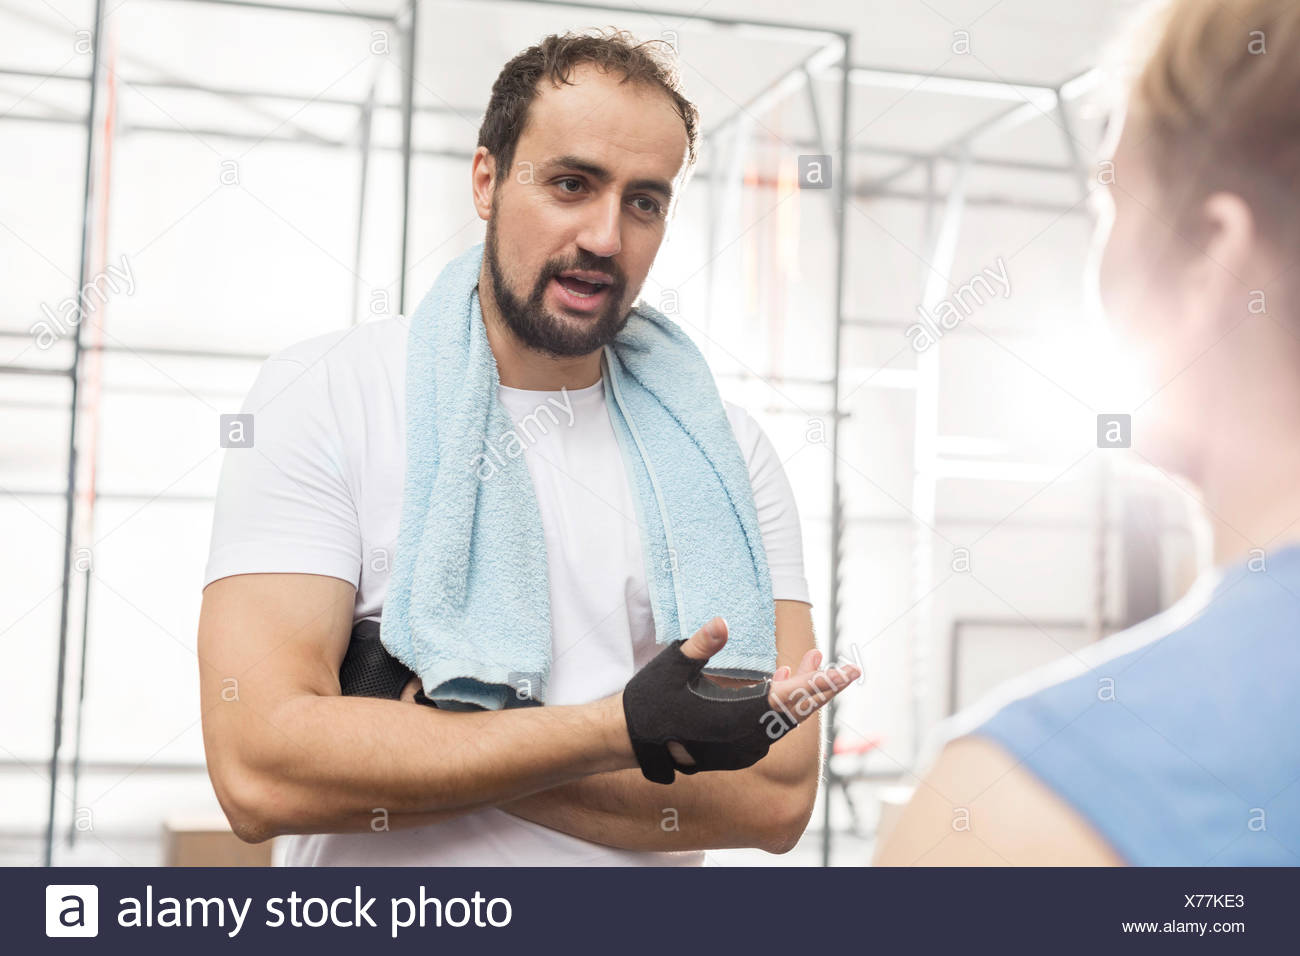 Man talking to male friend in crossfit gym - Stock Image